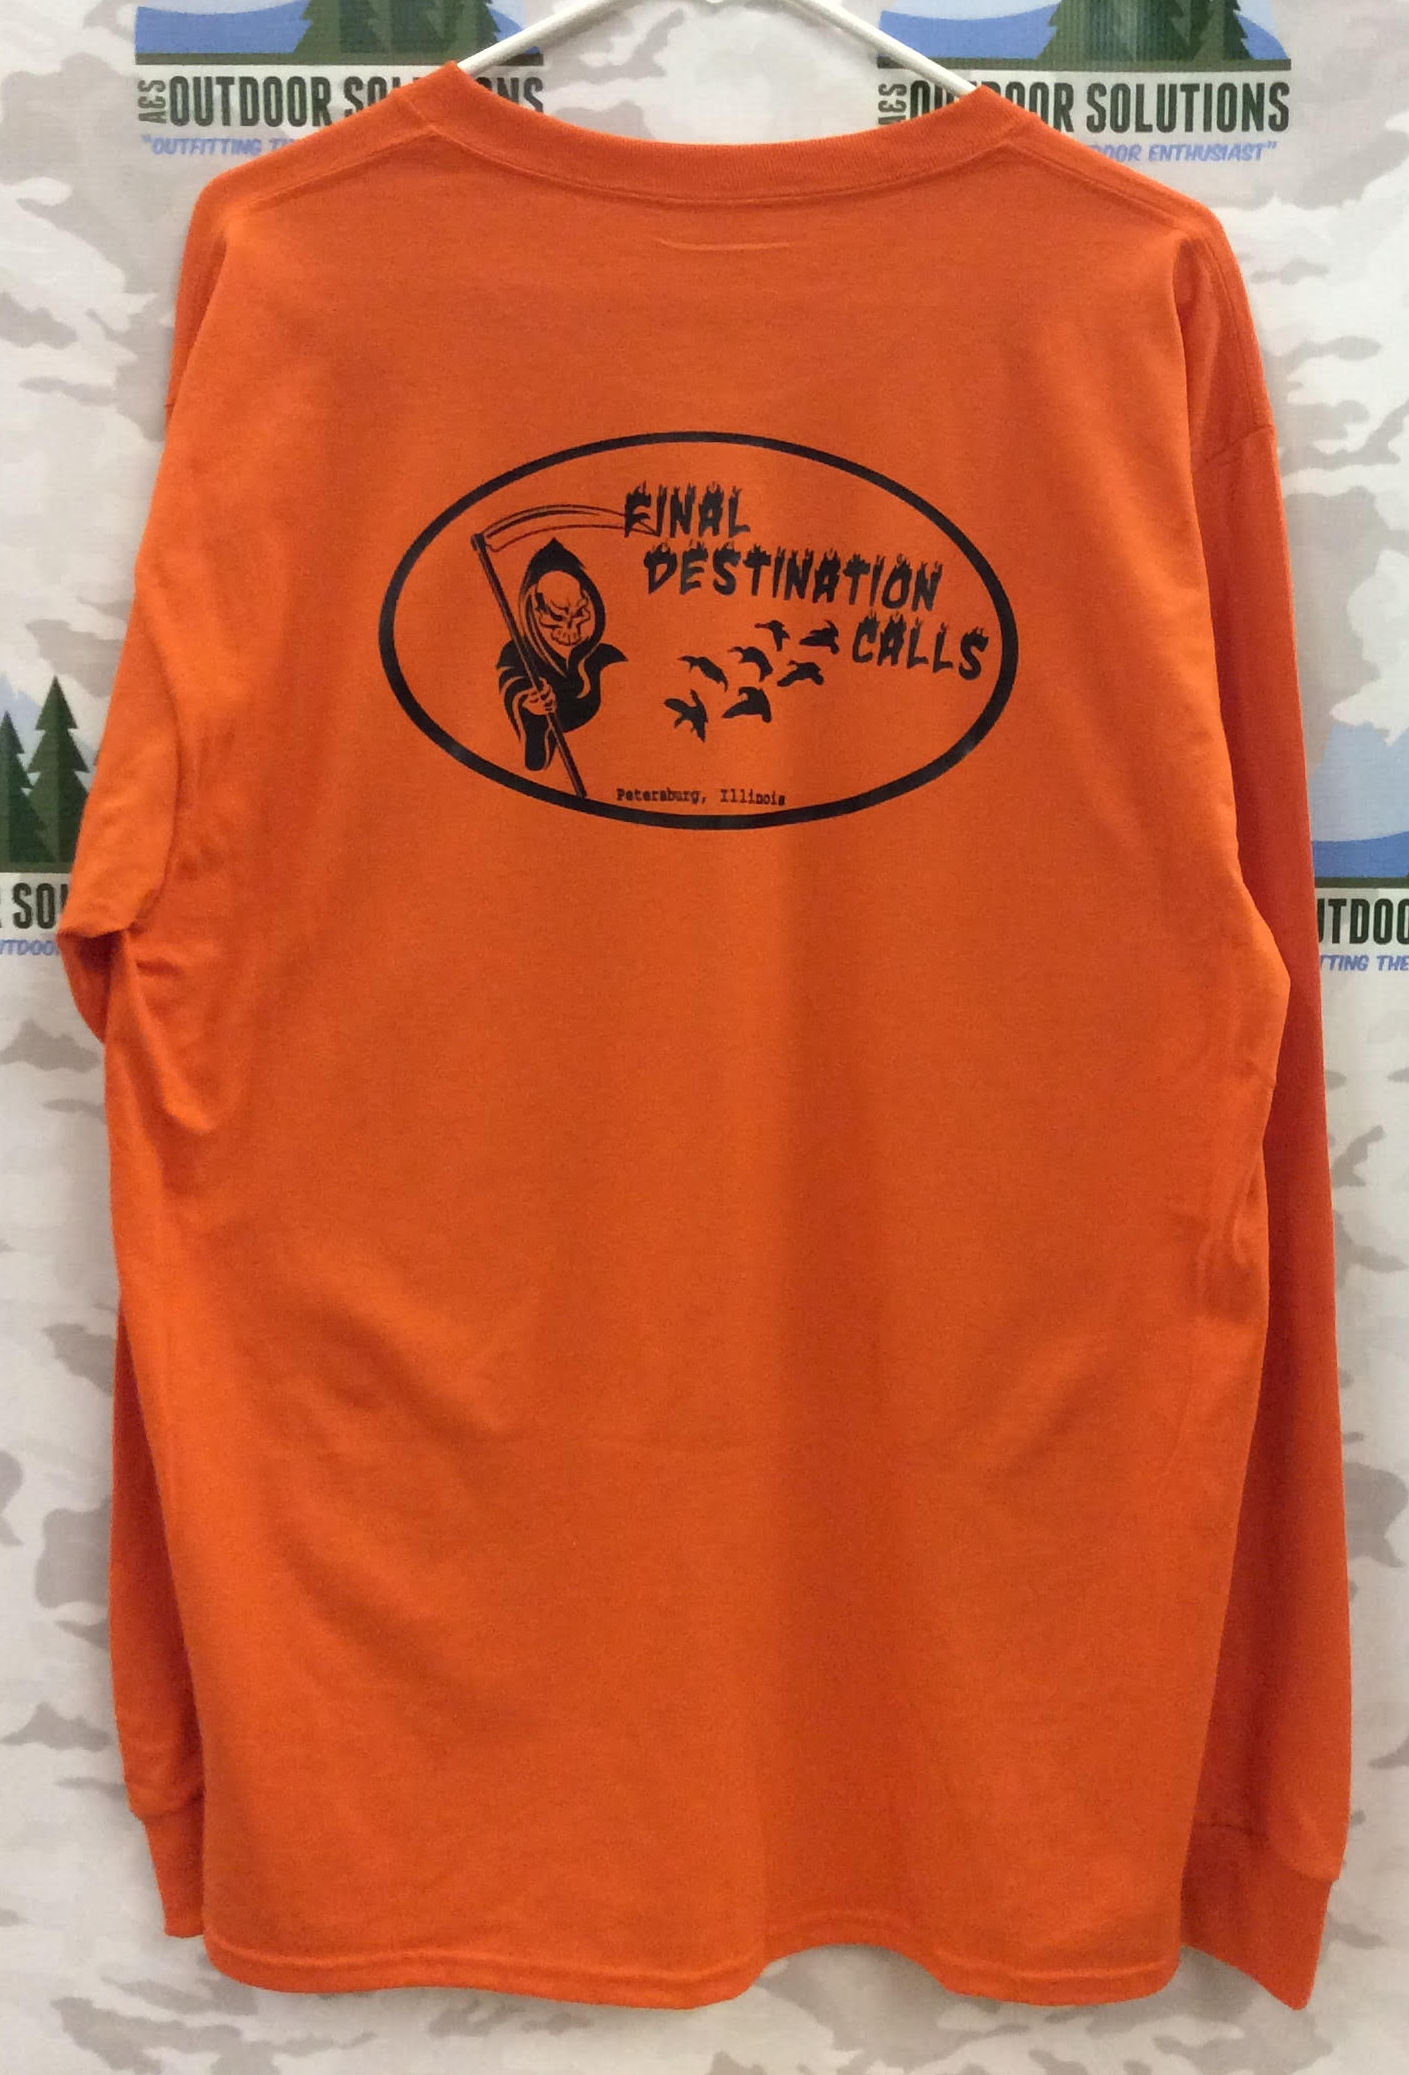 Final Destination Calls Long Sleeve Tee Back